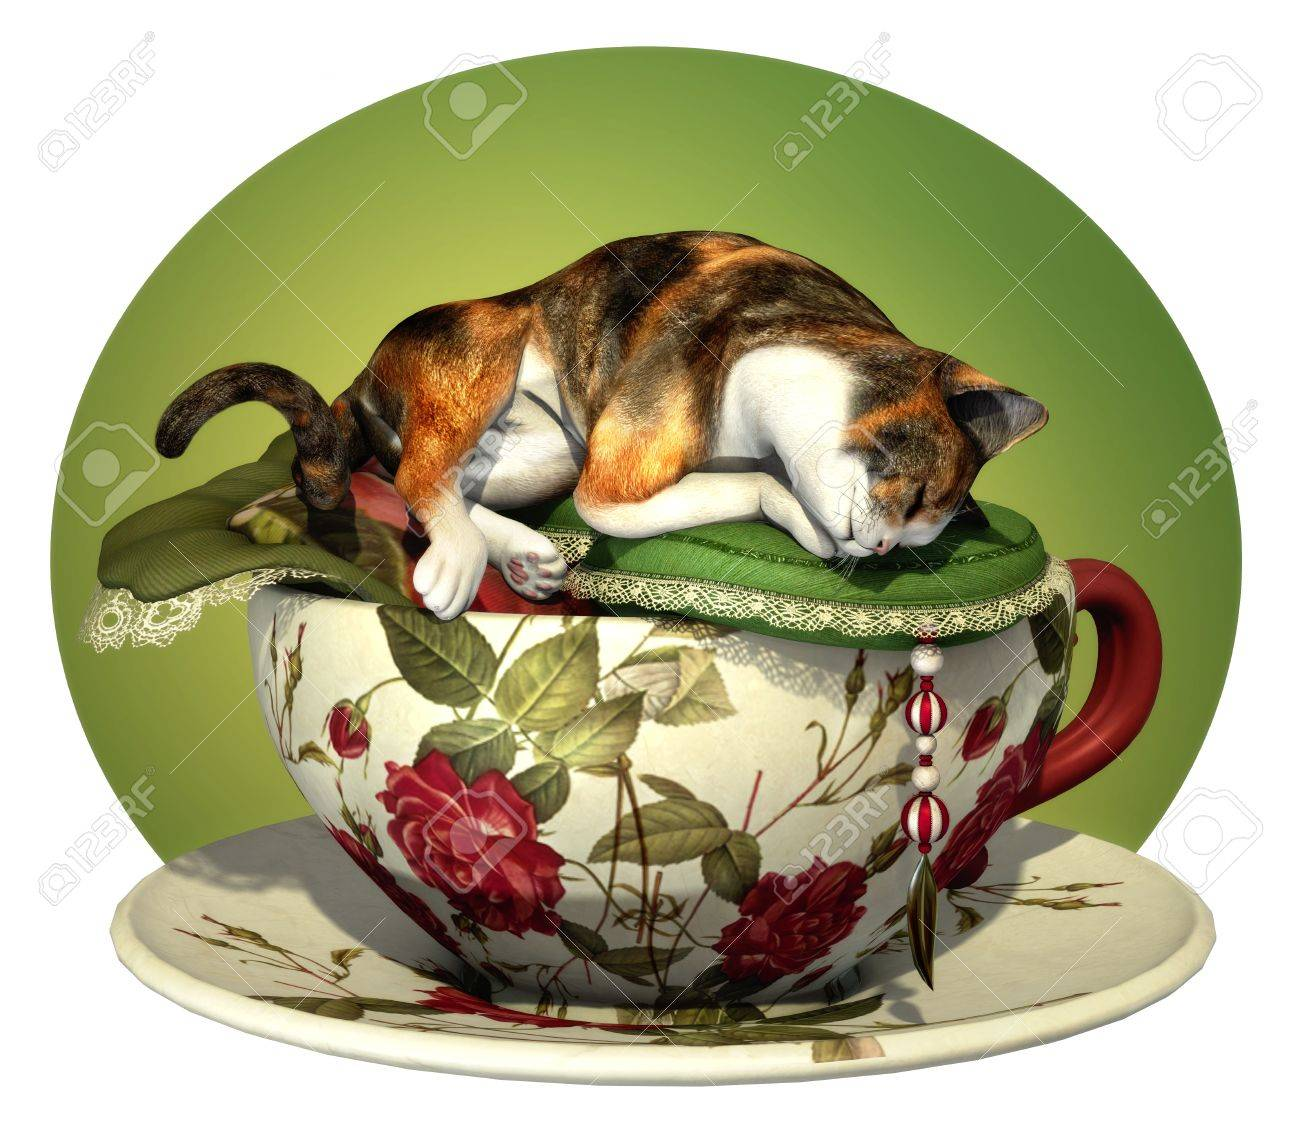 a decorative illustration with a sleeping cat Stock Photo - 13896176